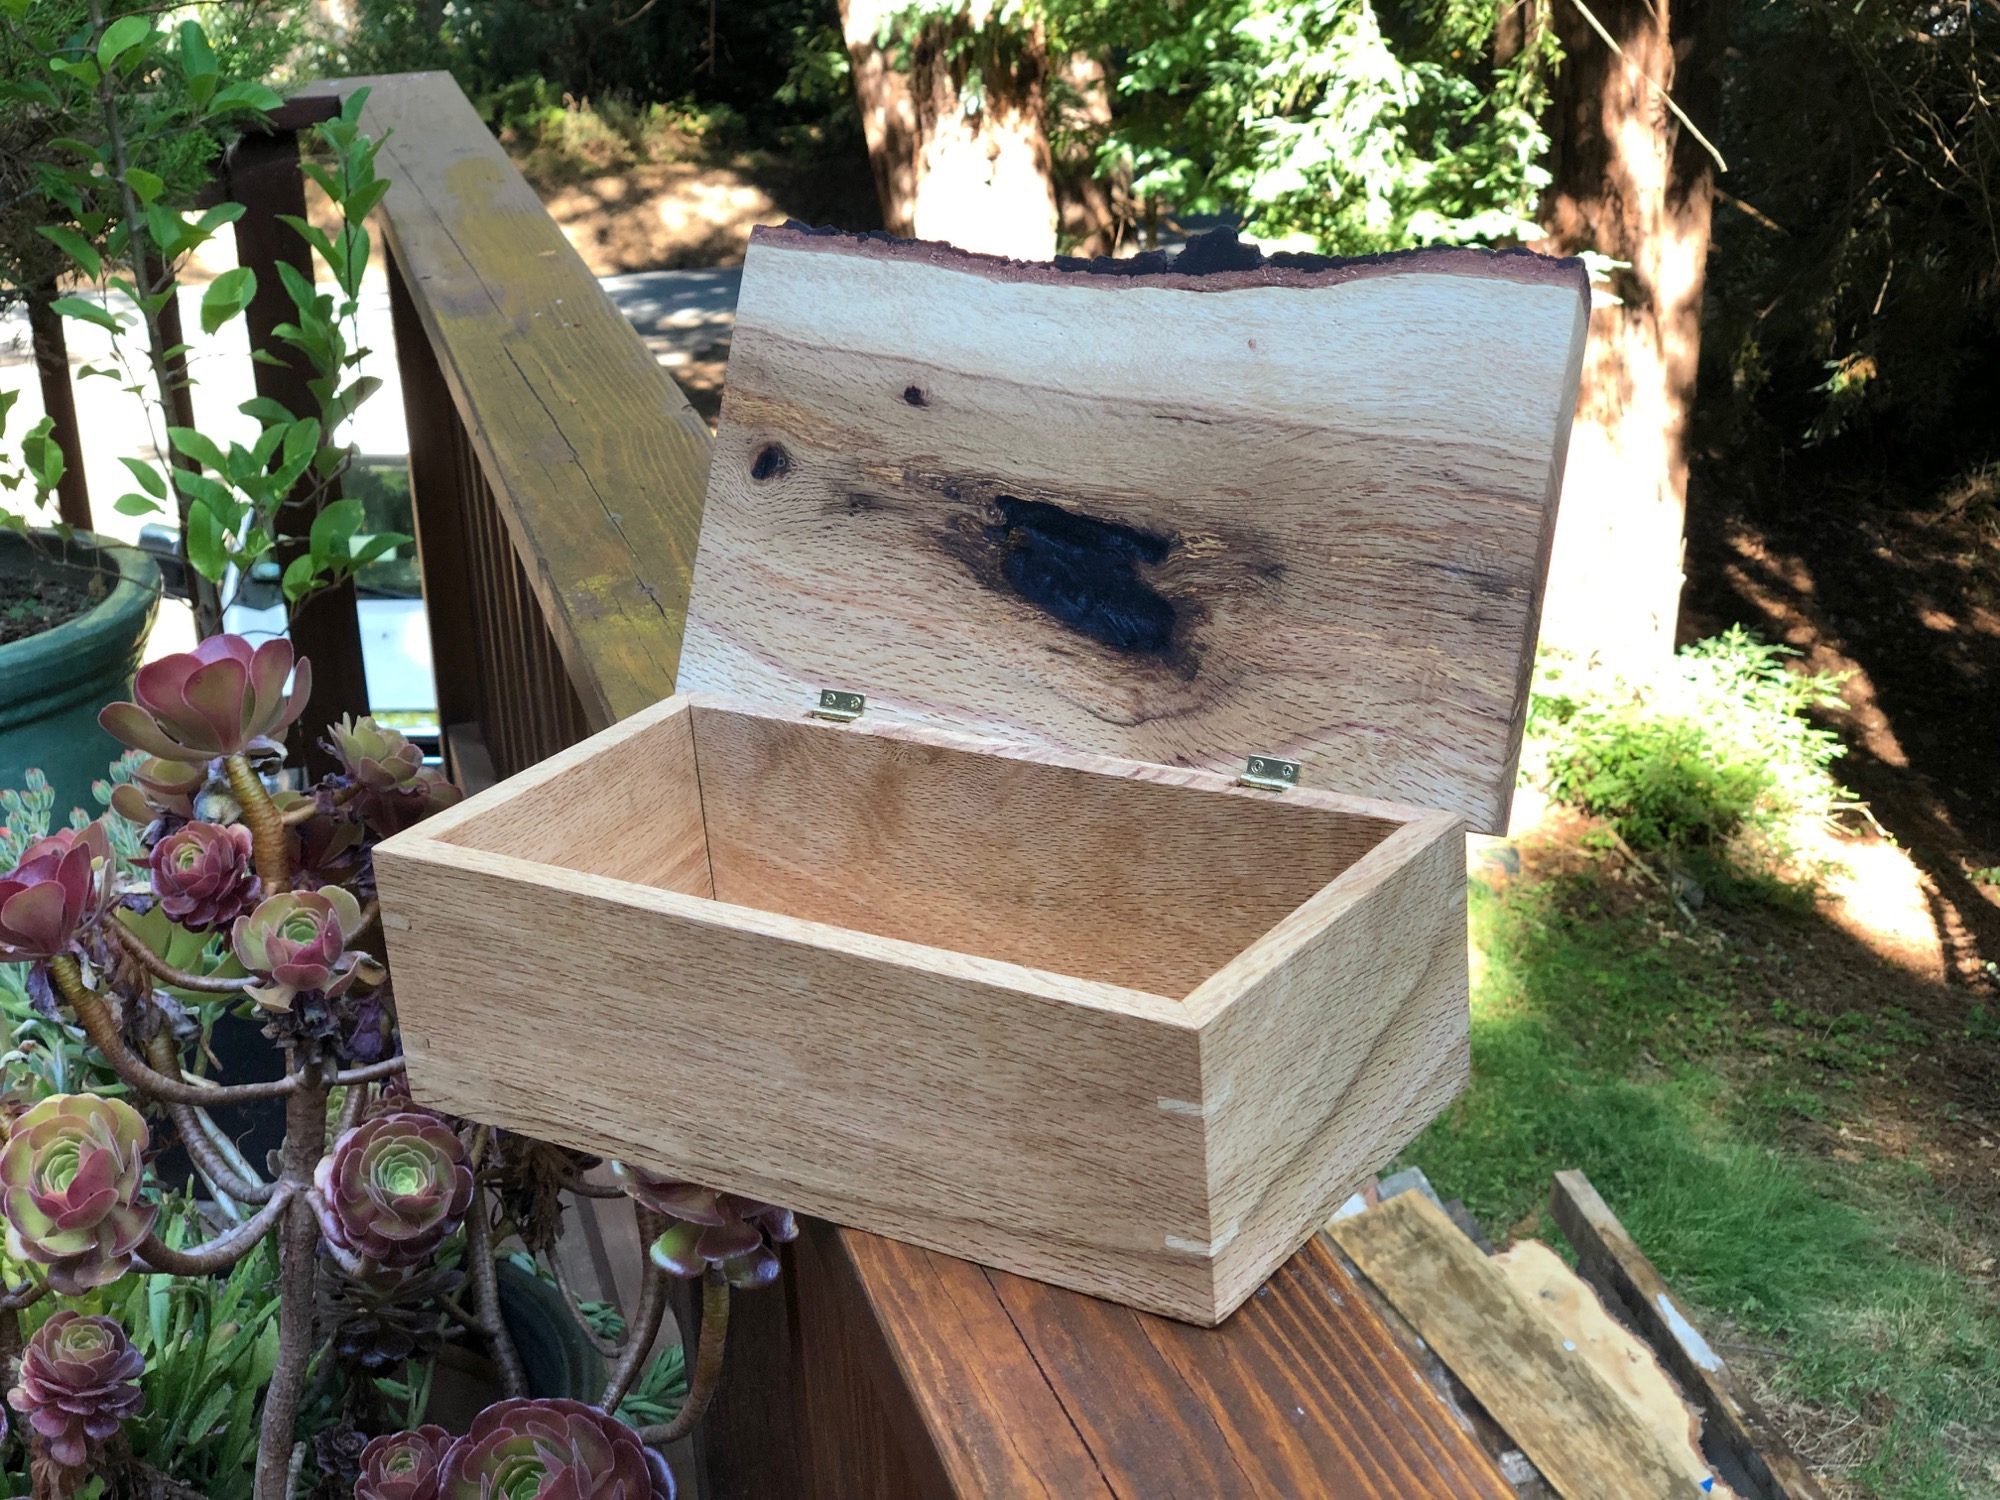 Live edge wood box top open right side woodworking